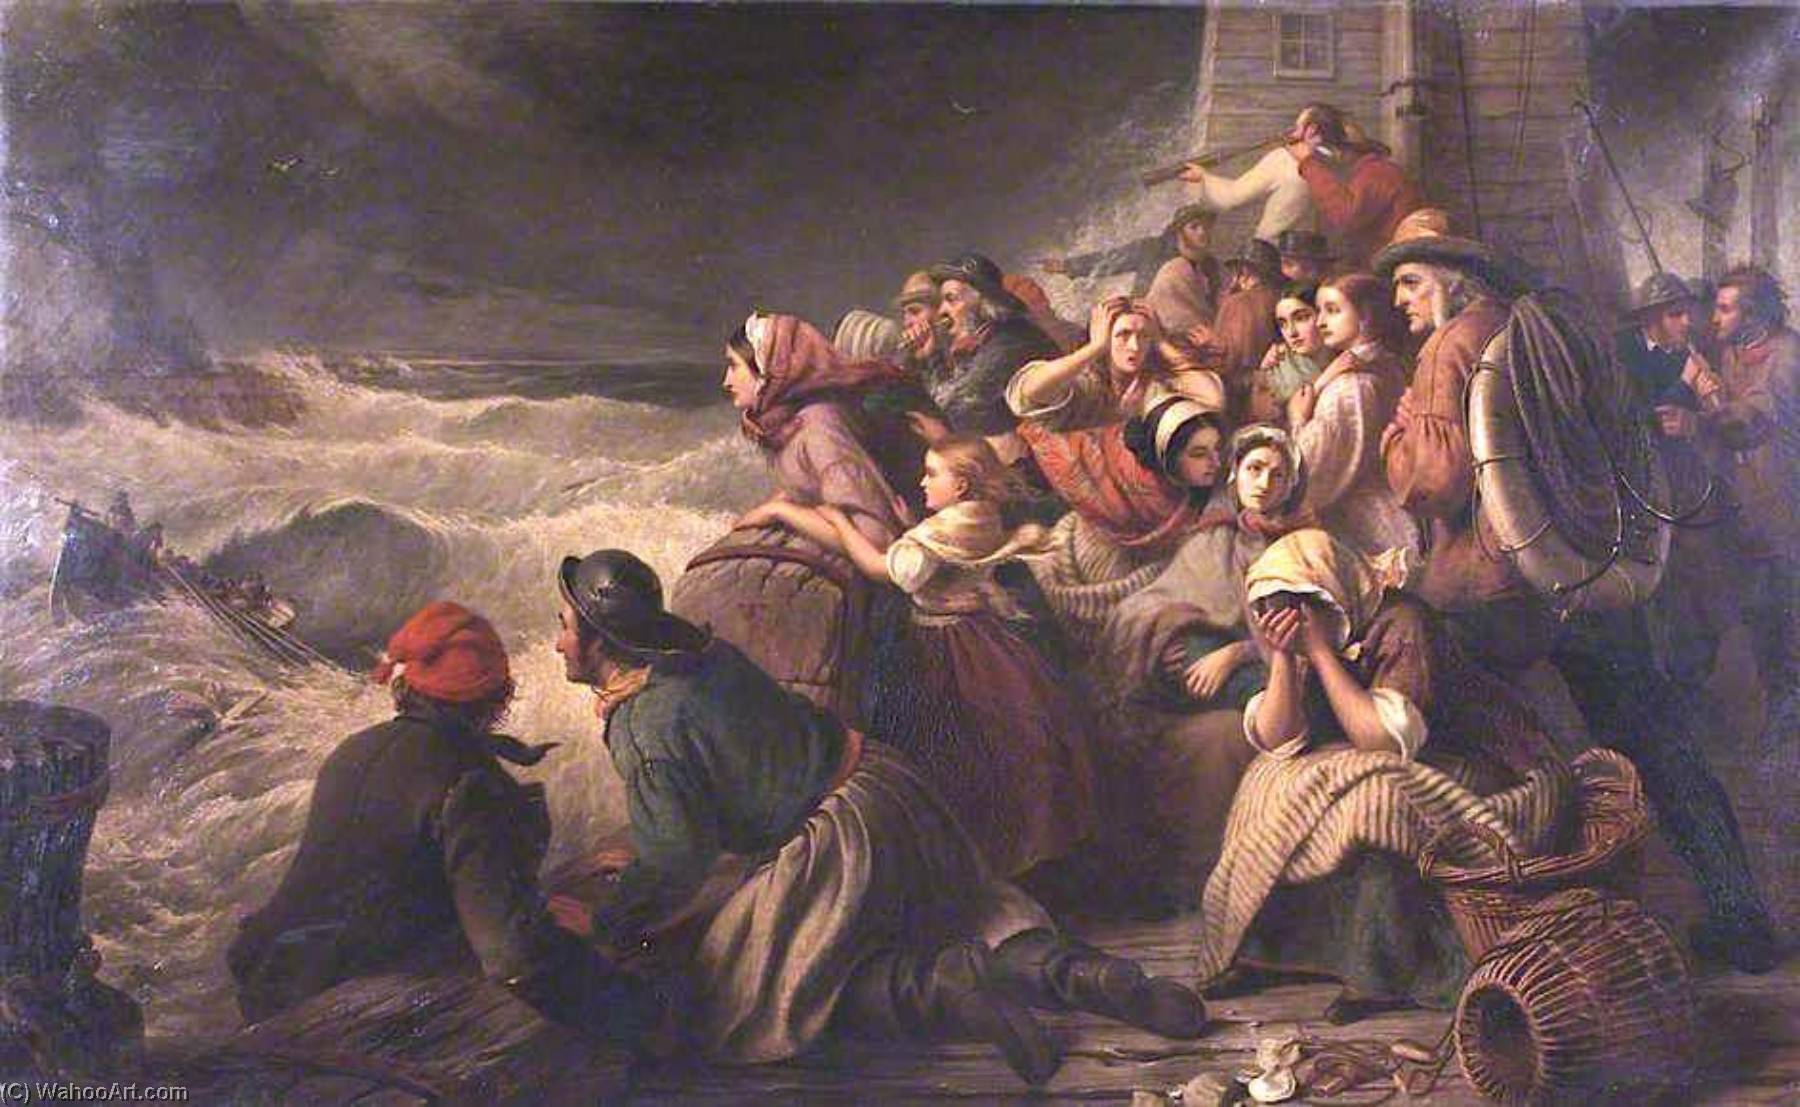 The Lifeboat Going to the Rescue, 1861 by Thomas Brooks | Famous Paintings Reproductions | WahooArt.com